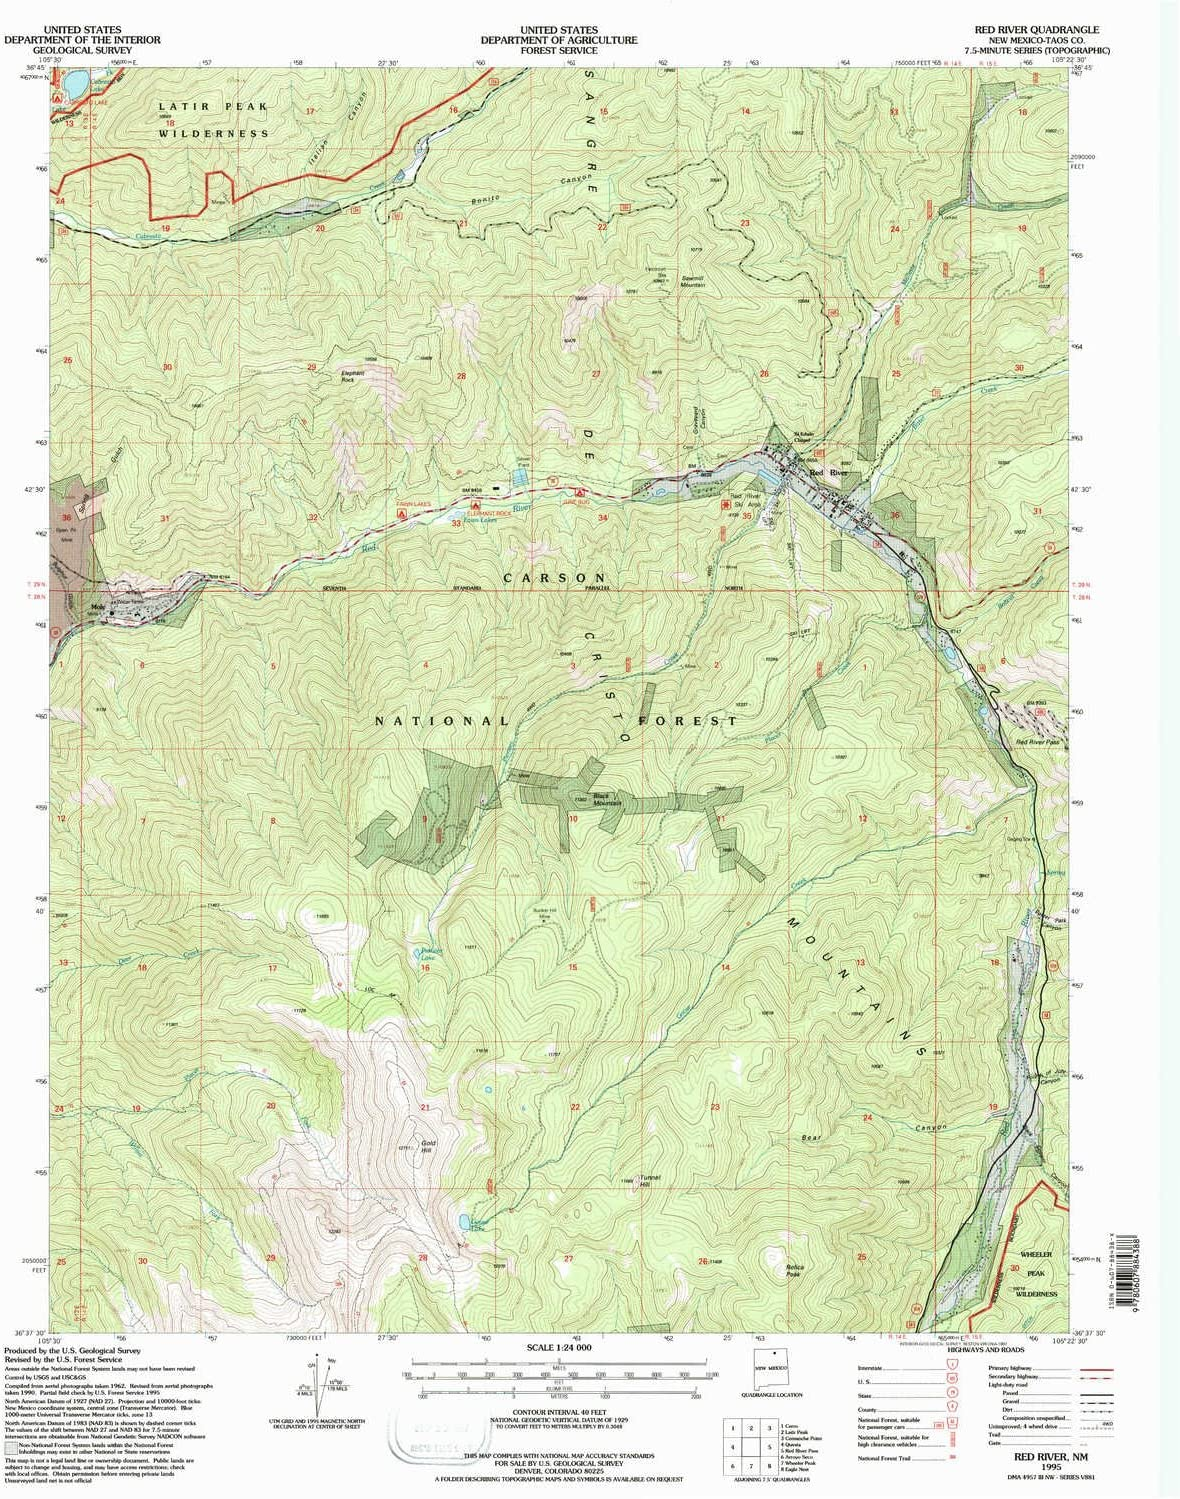 Amazon Com Yellowmaps Red River Nm Topo Map 1 24000 Scale 7 5 X 7 5 Minute Historical 1995 Updated 1997 27 X 22 In Paper Sports Outdoors